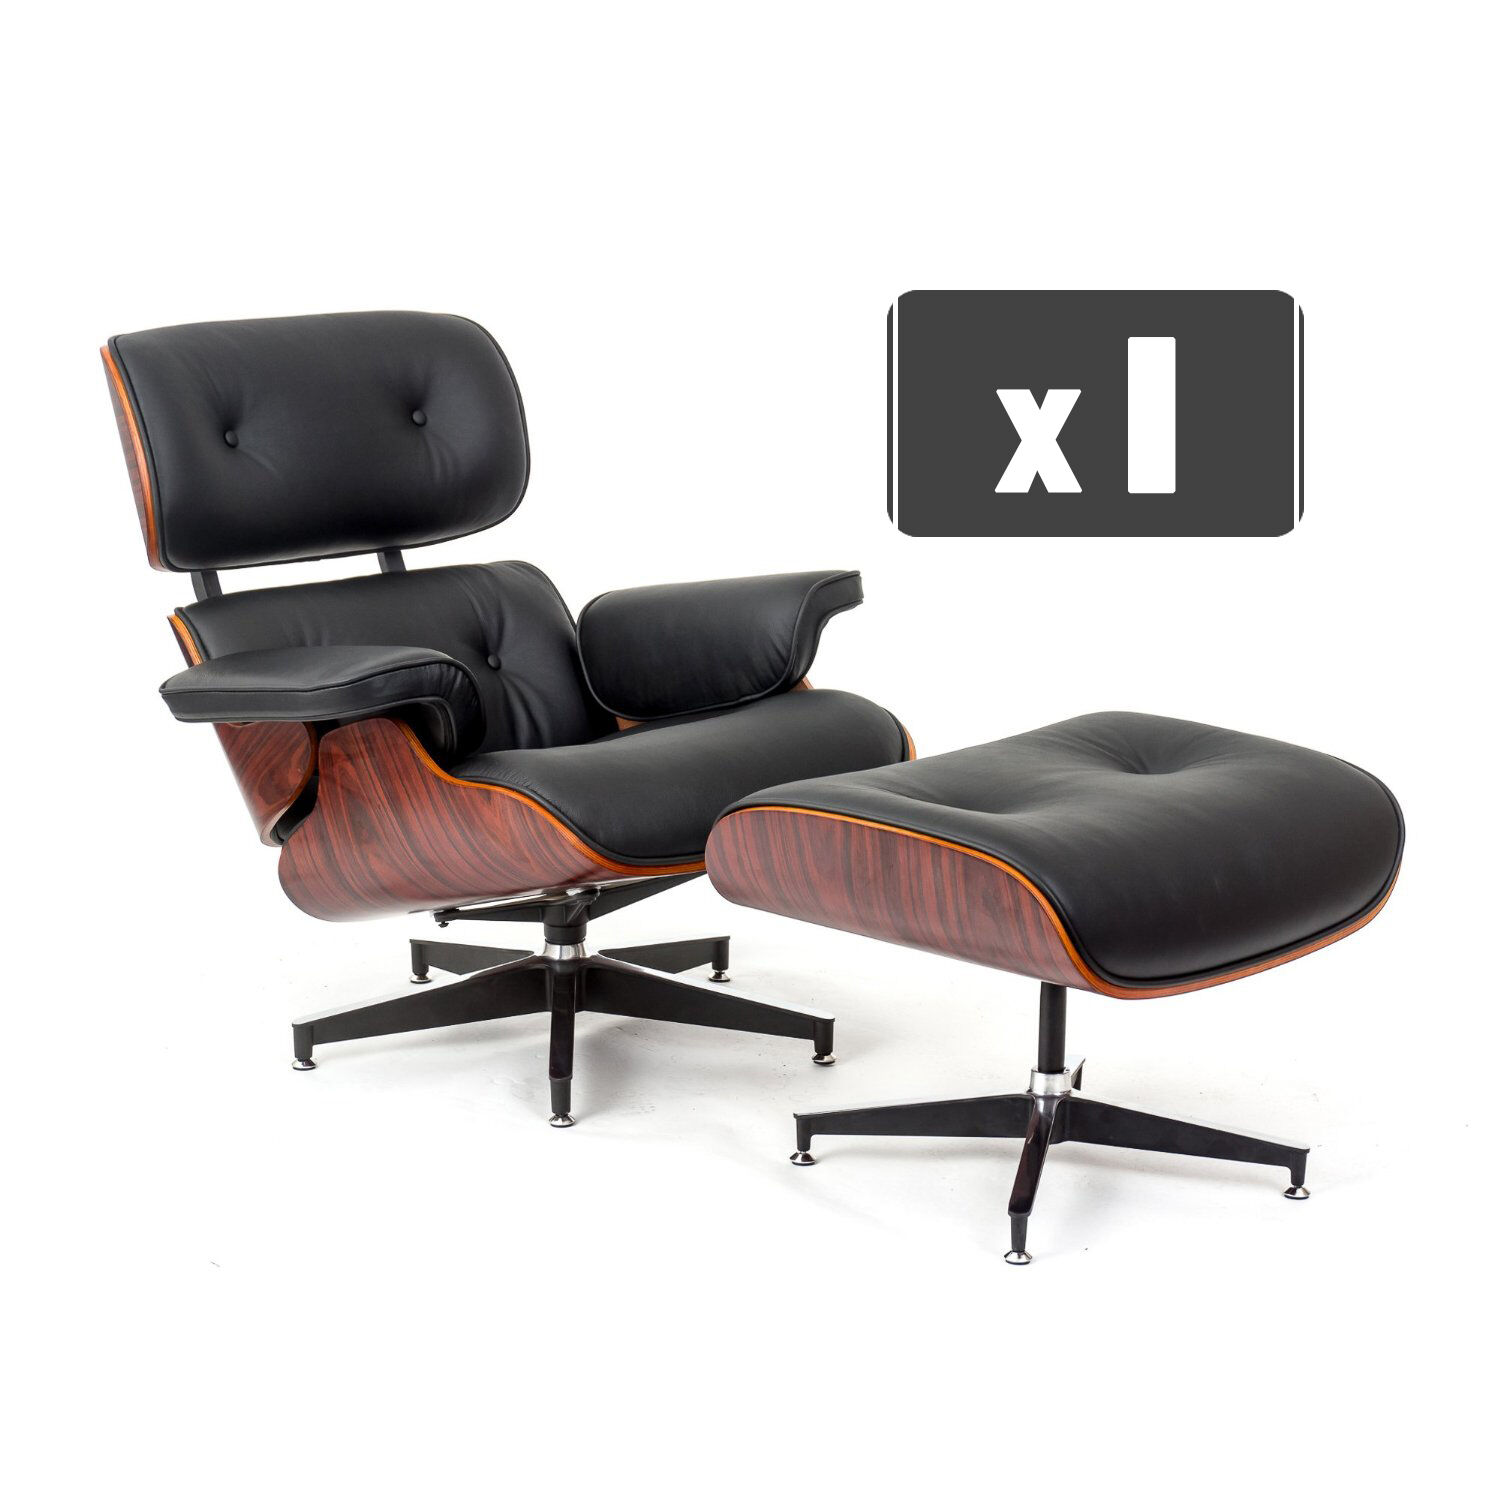 Replica charles eames lounge chair ottoman in black for Eames chair fake